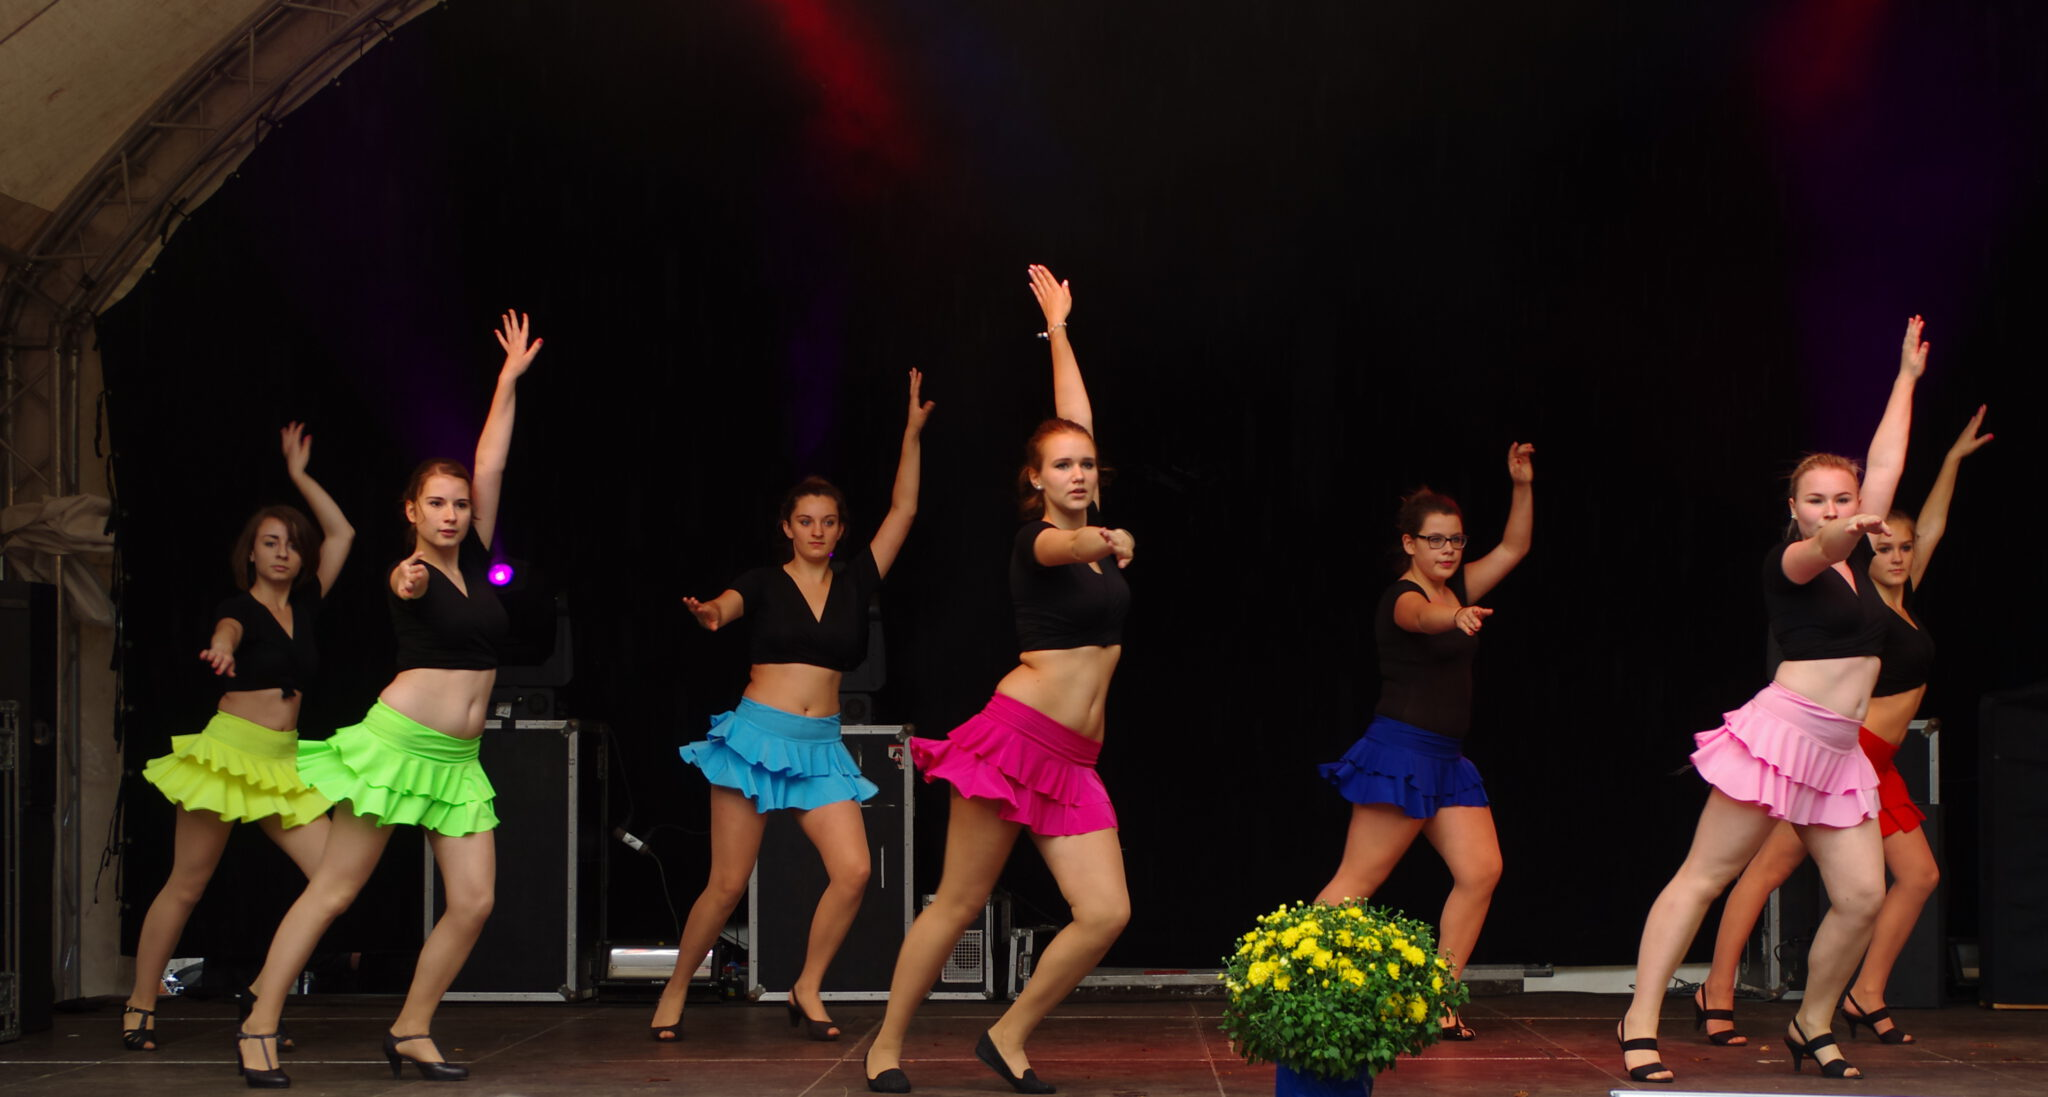 Jahr 2014. Kindertanzclub bravO.